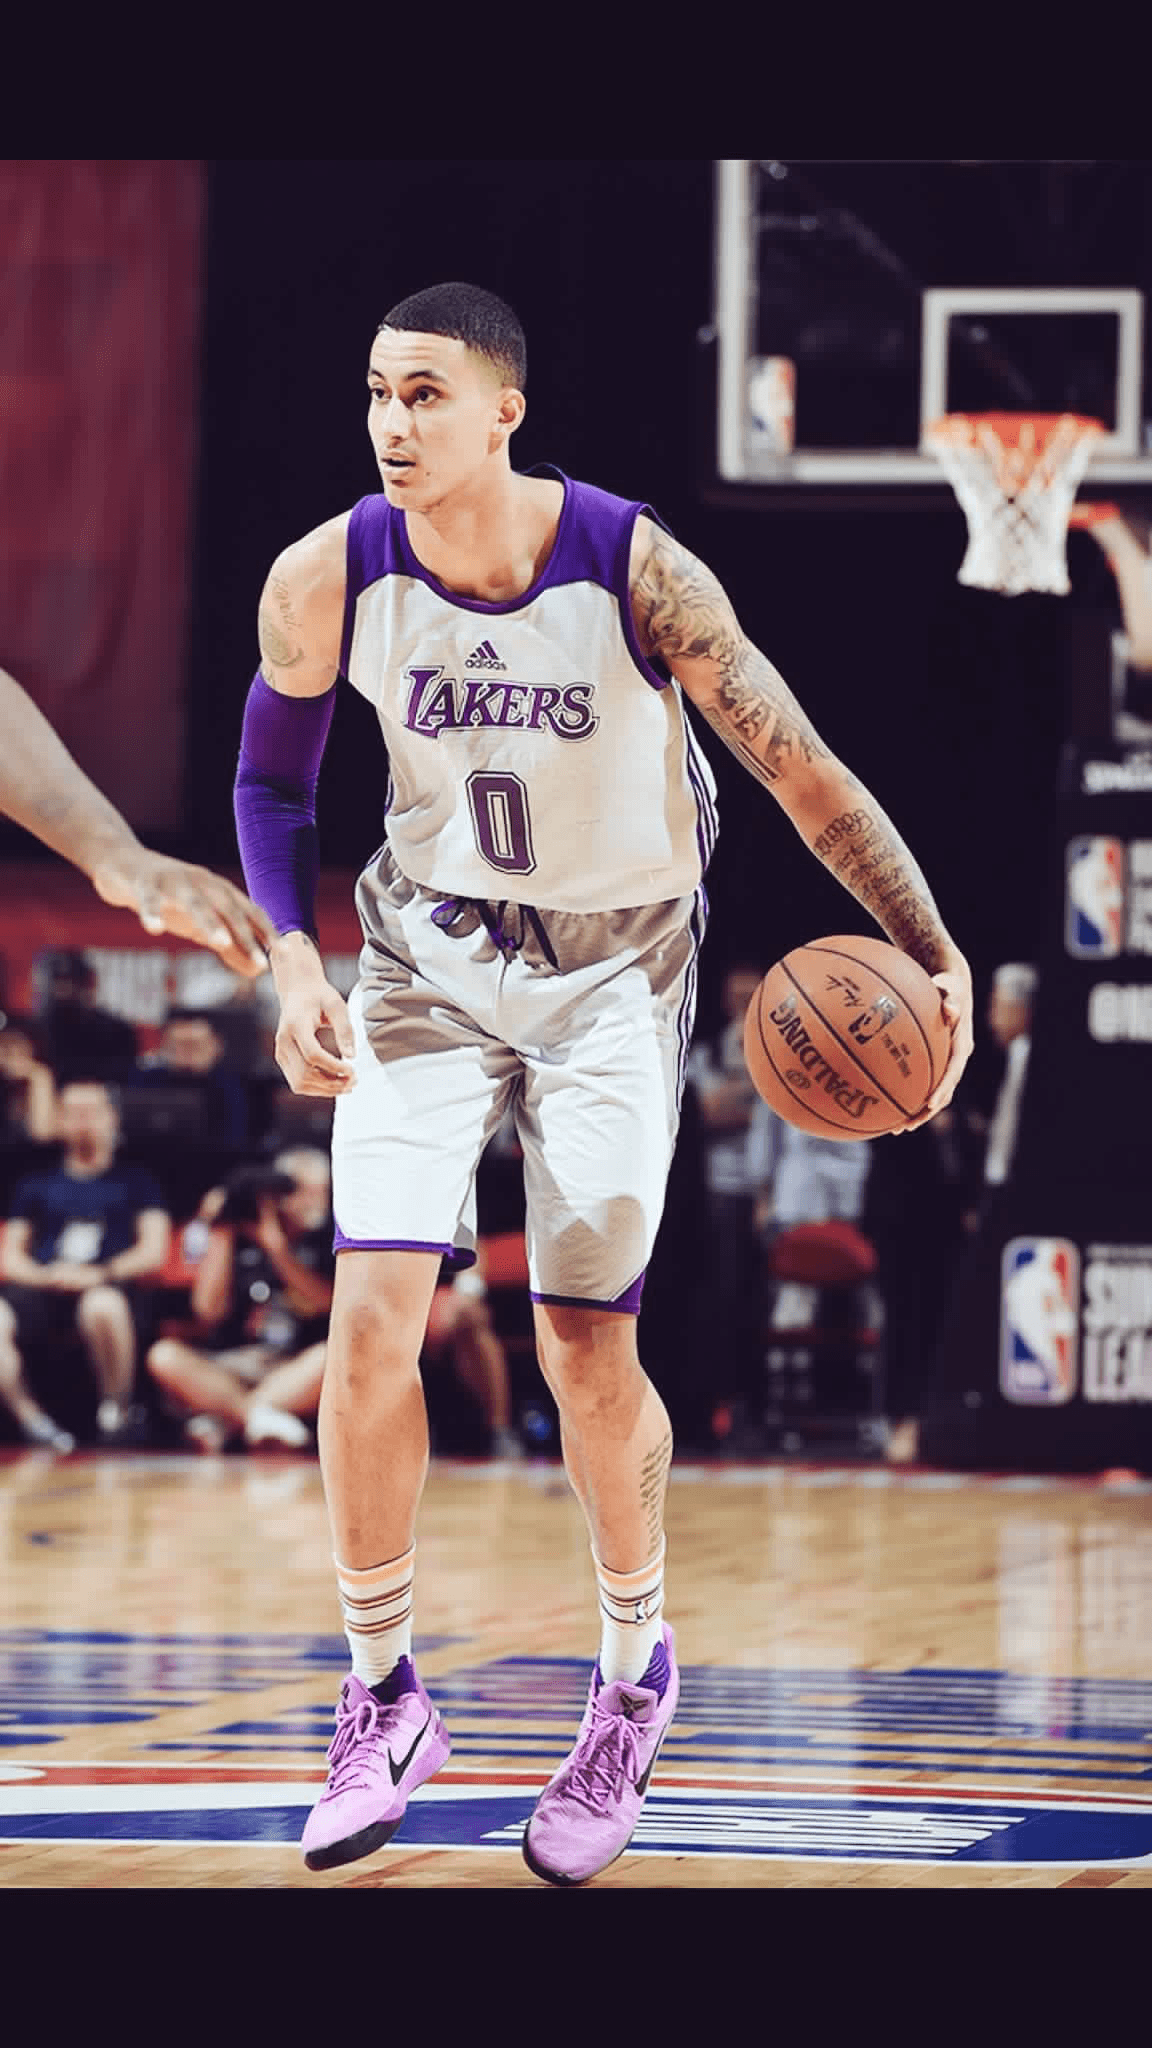 Kyle Kuzma #Lakers #Nike | Basketball: Los Angeles Lakers | Pinterest